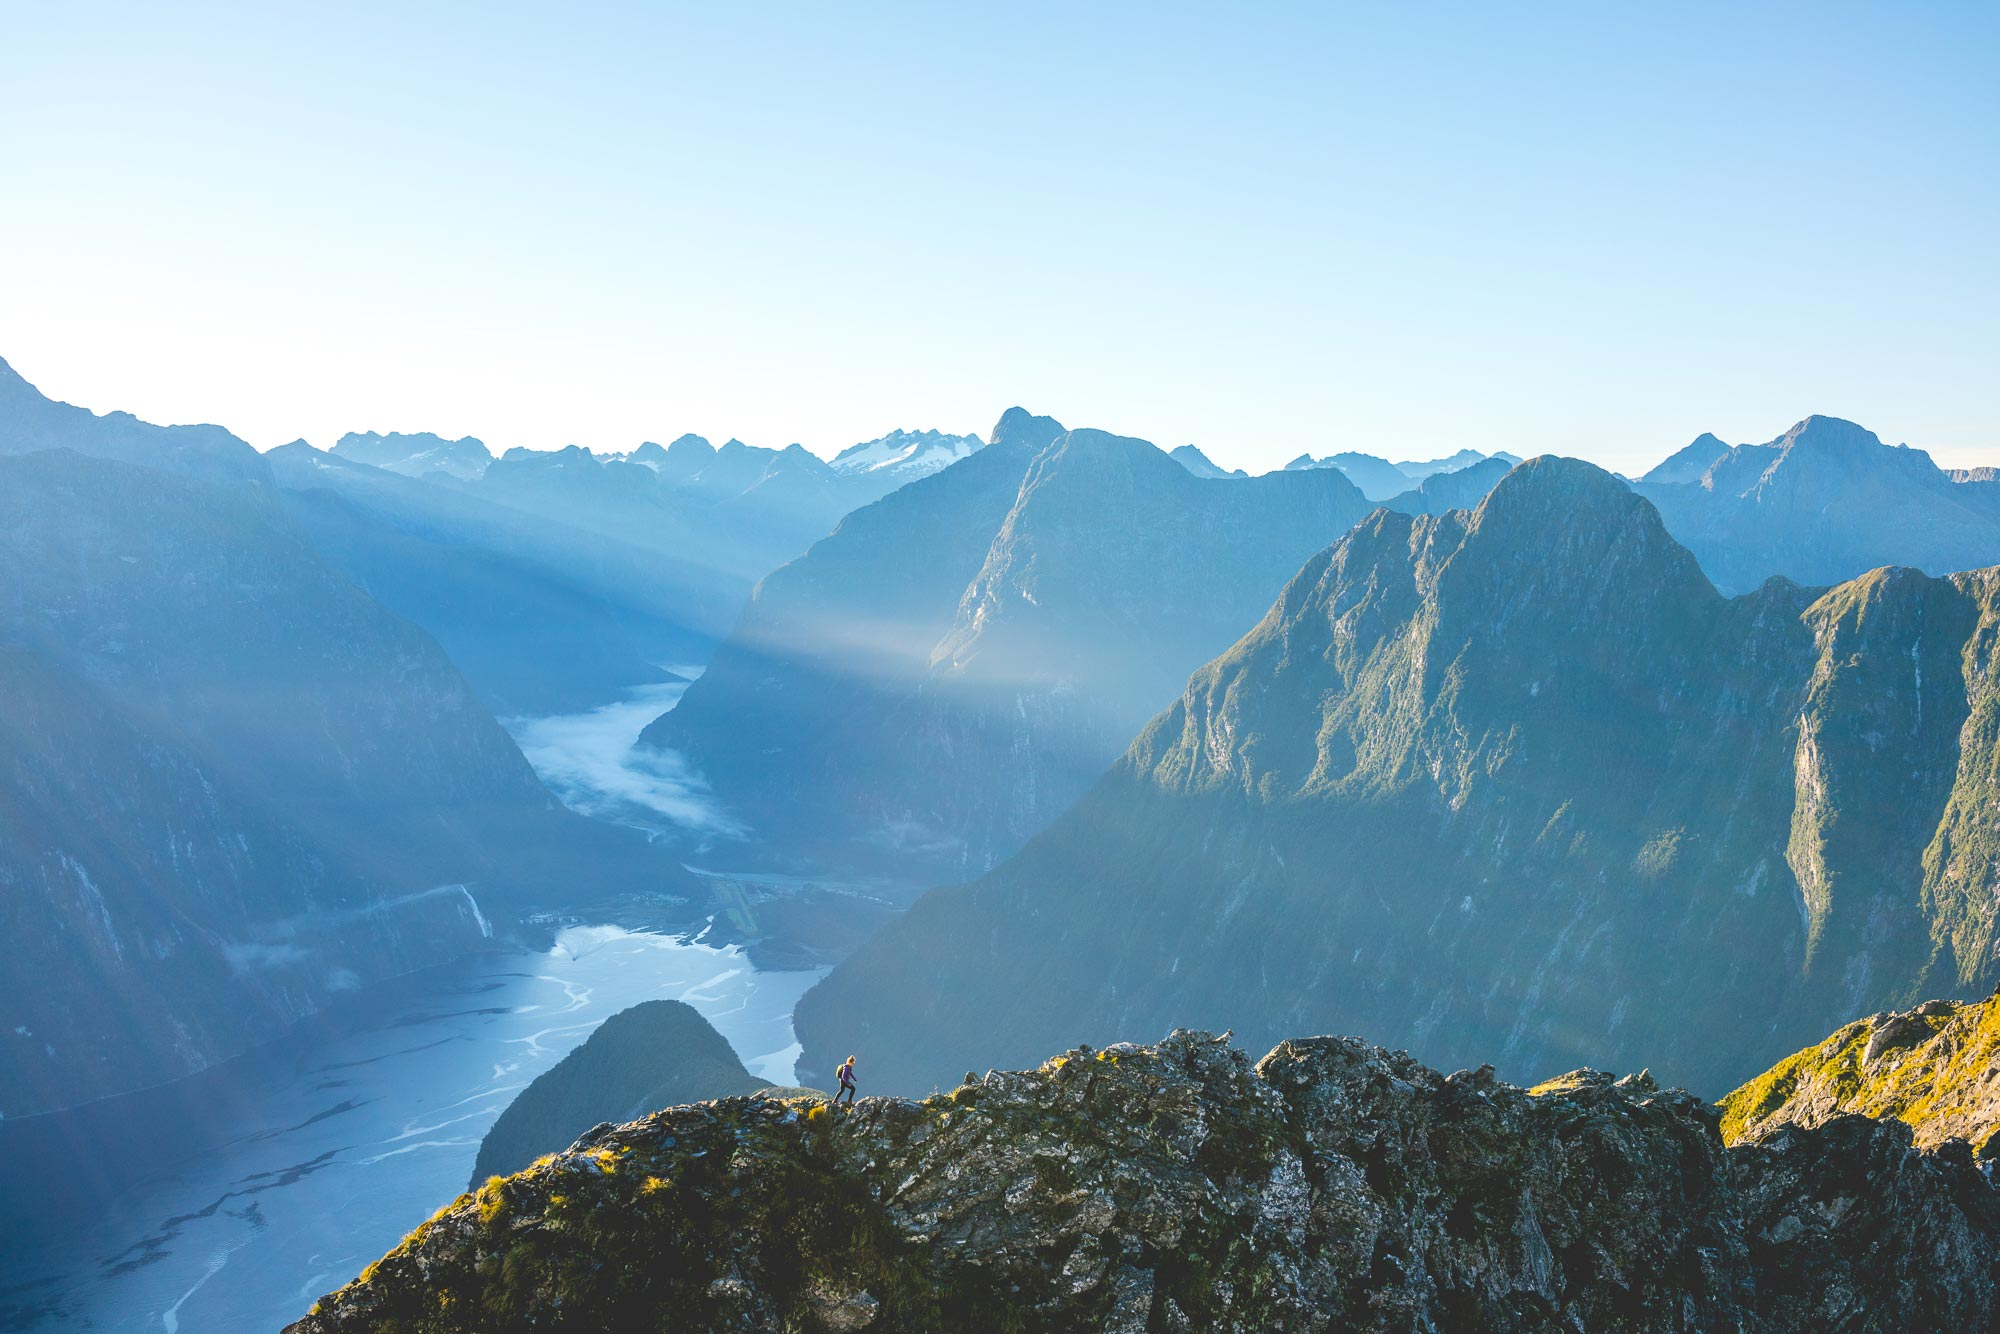 Hiking Across a knife edge on Mitre Peak in Milford Sound, NZ